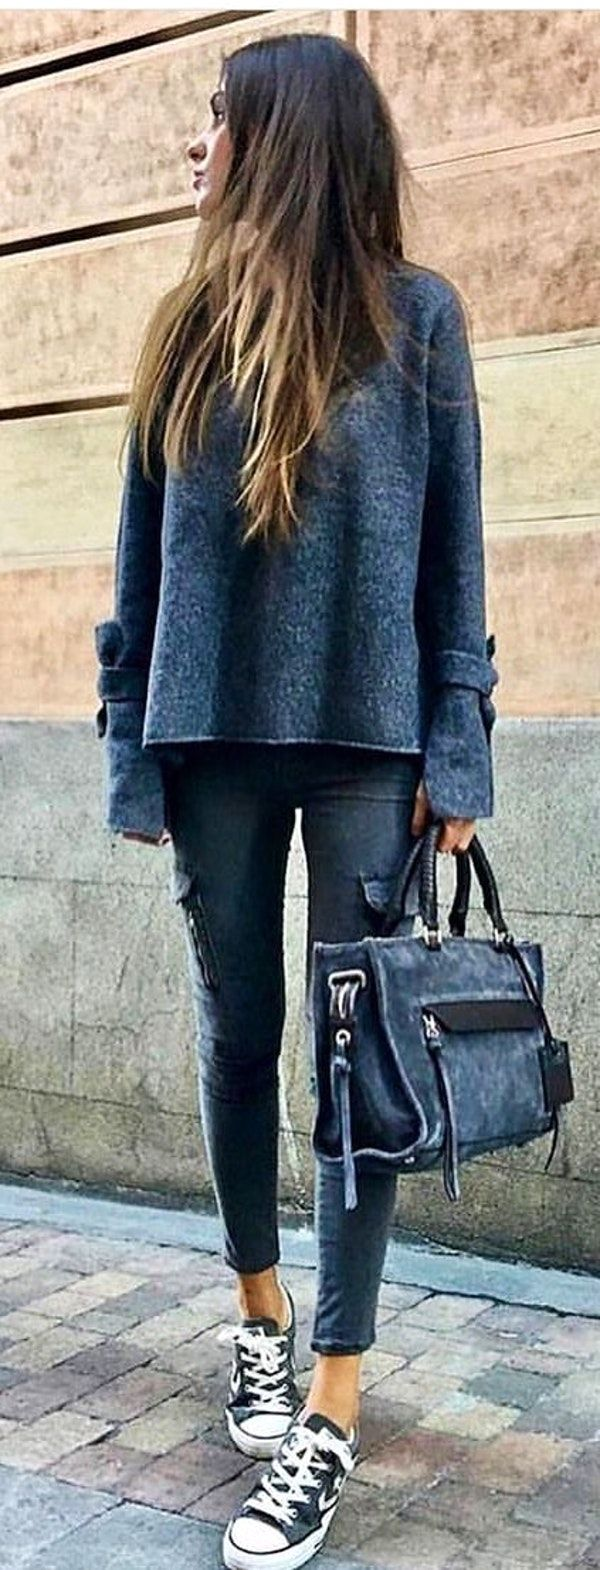 #spring #outfits  woman in gray sweater with gray denim distressed jeans and black-and-white Converse Star Player low-top sneakers holding gray suede tote bag. Pic by @__viva_la_moda__